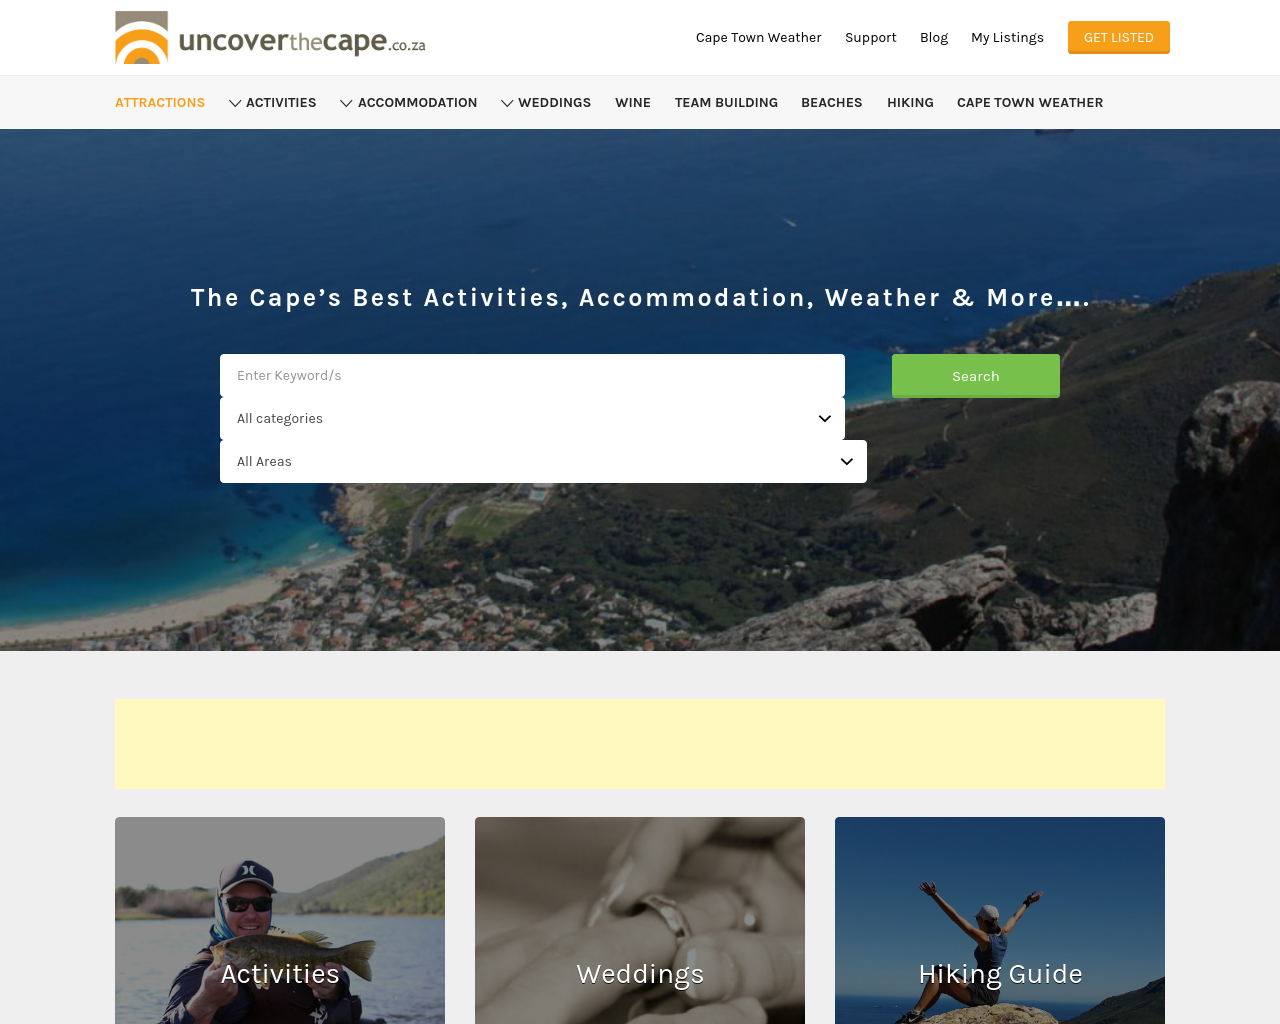 uncoverthecape.co.za-Advertising-Reviews-Pricing